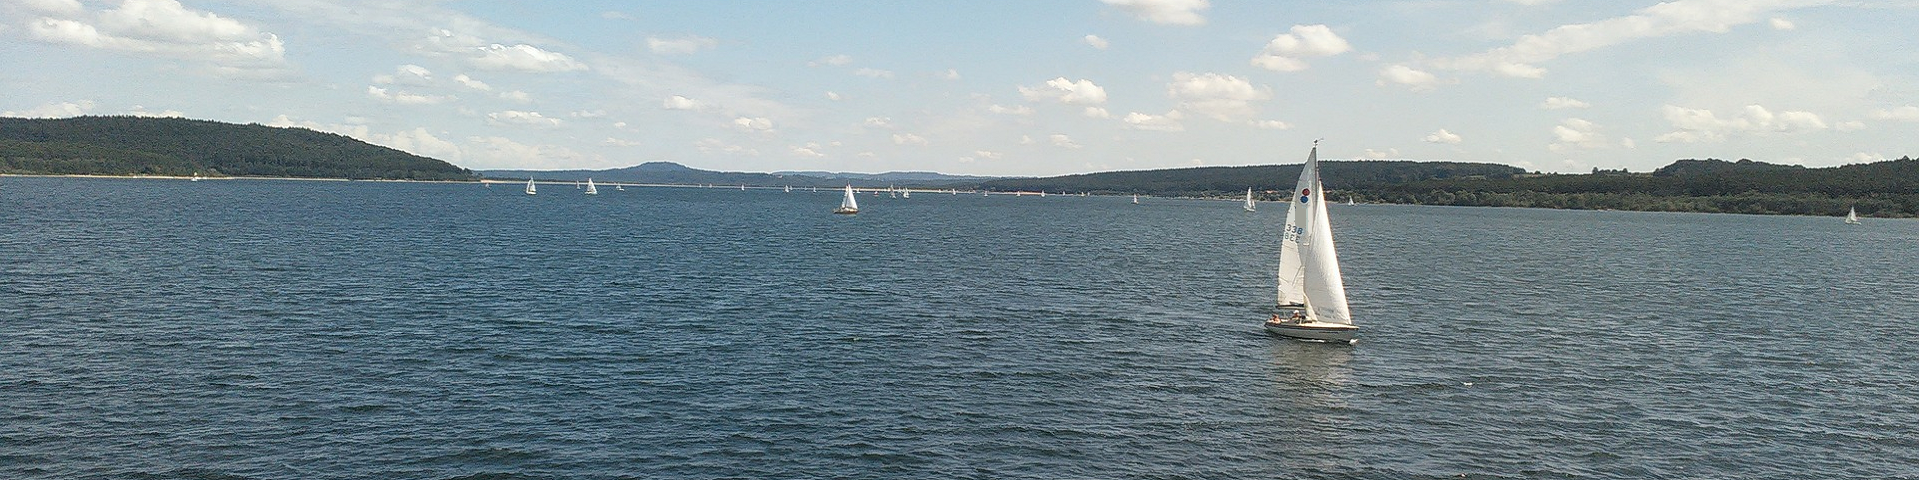 Sailing boat on water